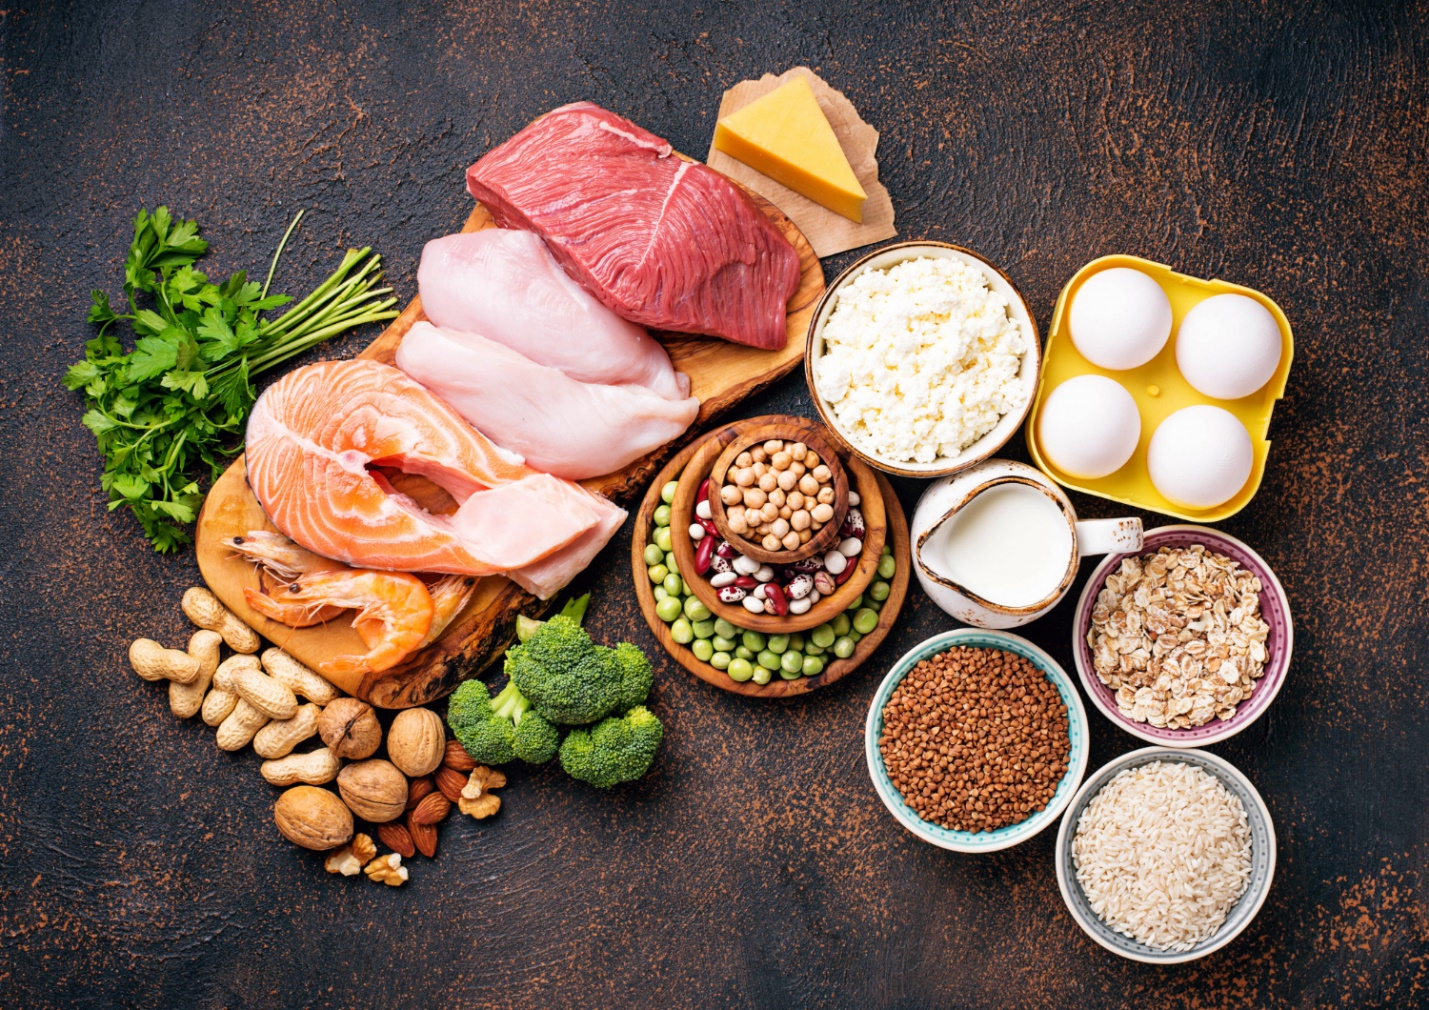 C:\Users\Dell\Downloads\healthy-food-high-protein (5).jpg